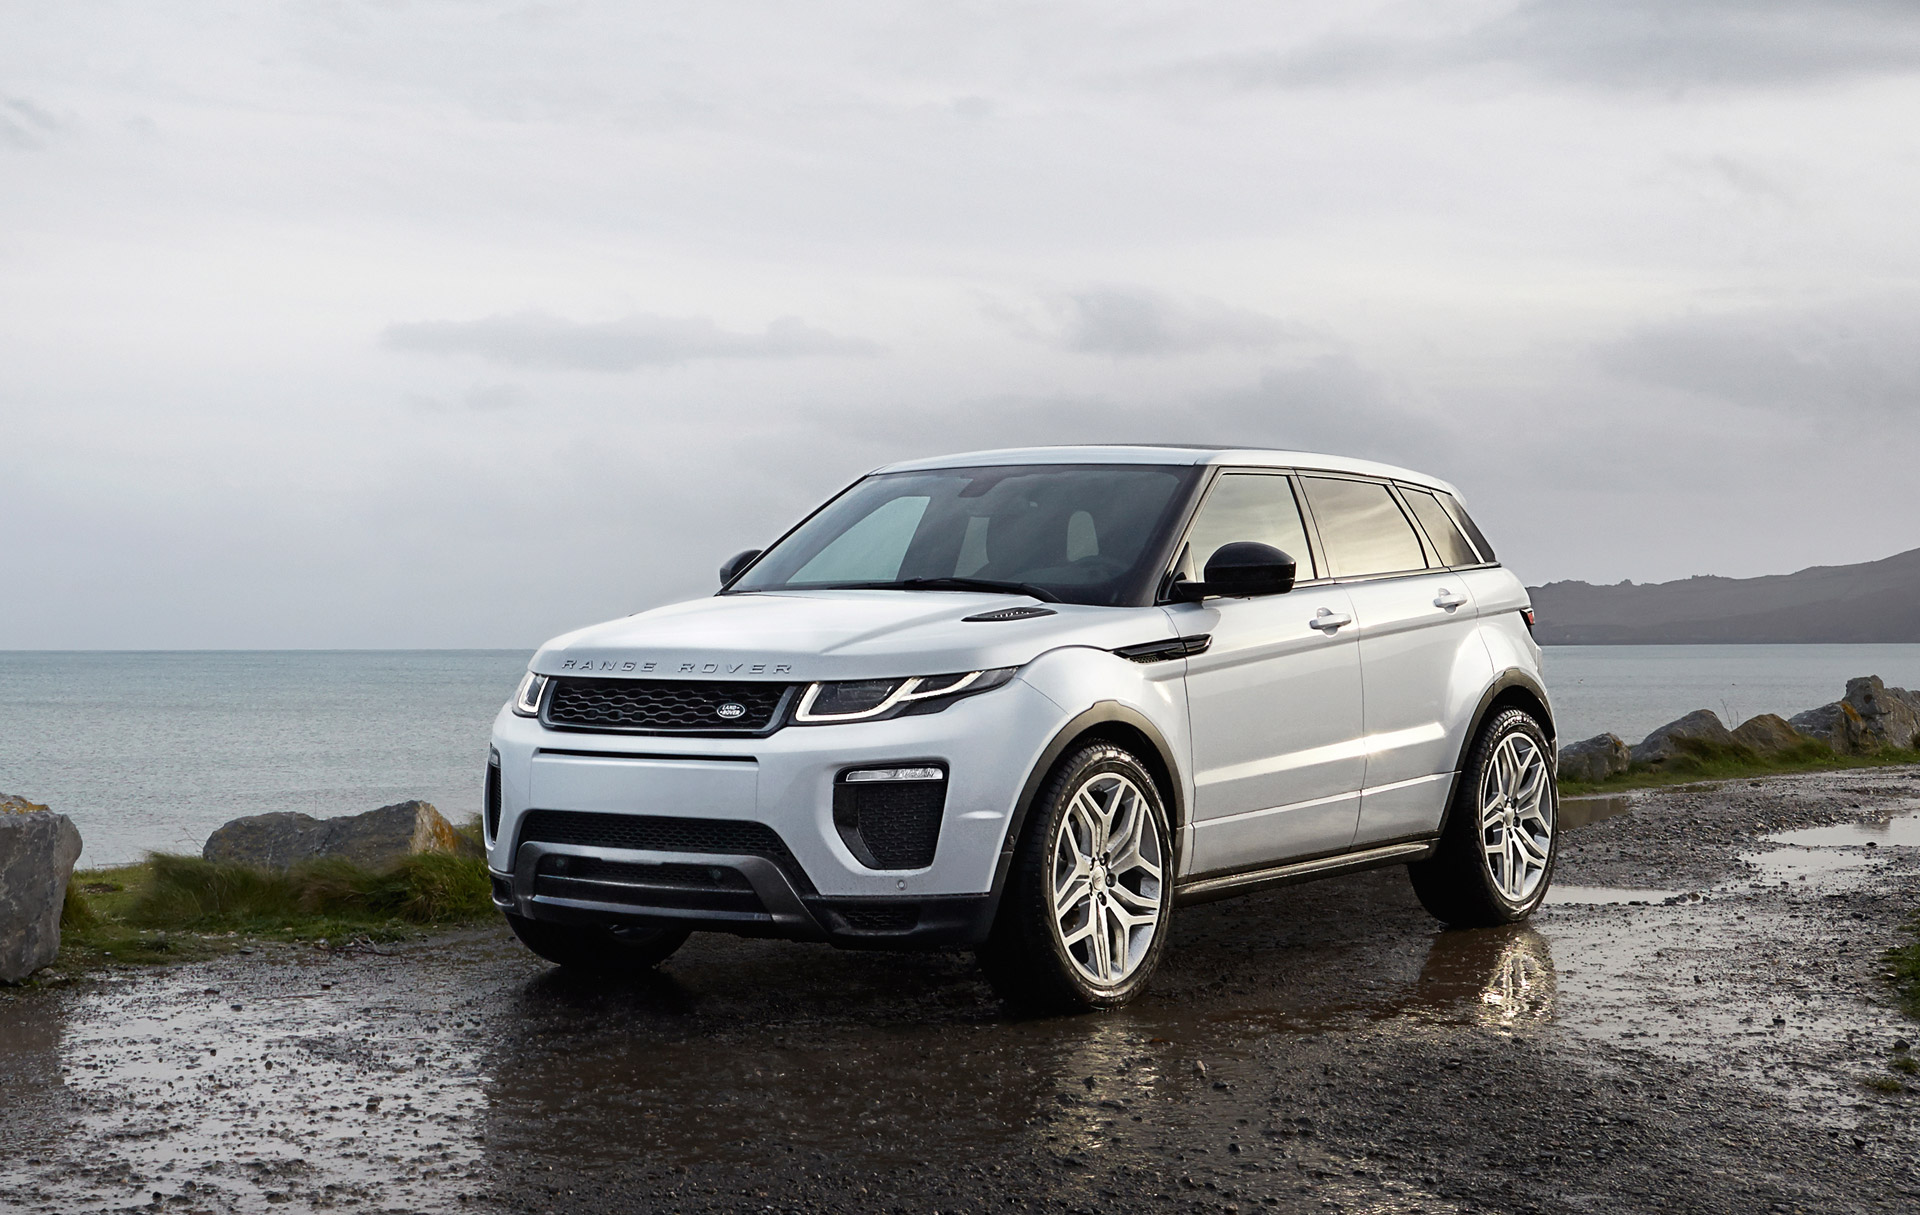 Land Range Rover Evoque Reviews New and used land rover range